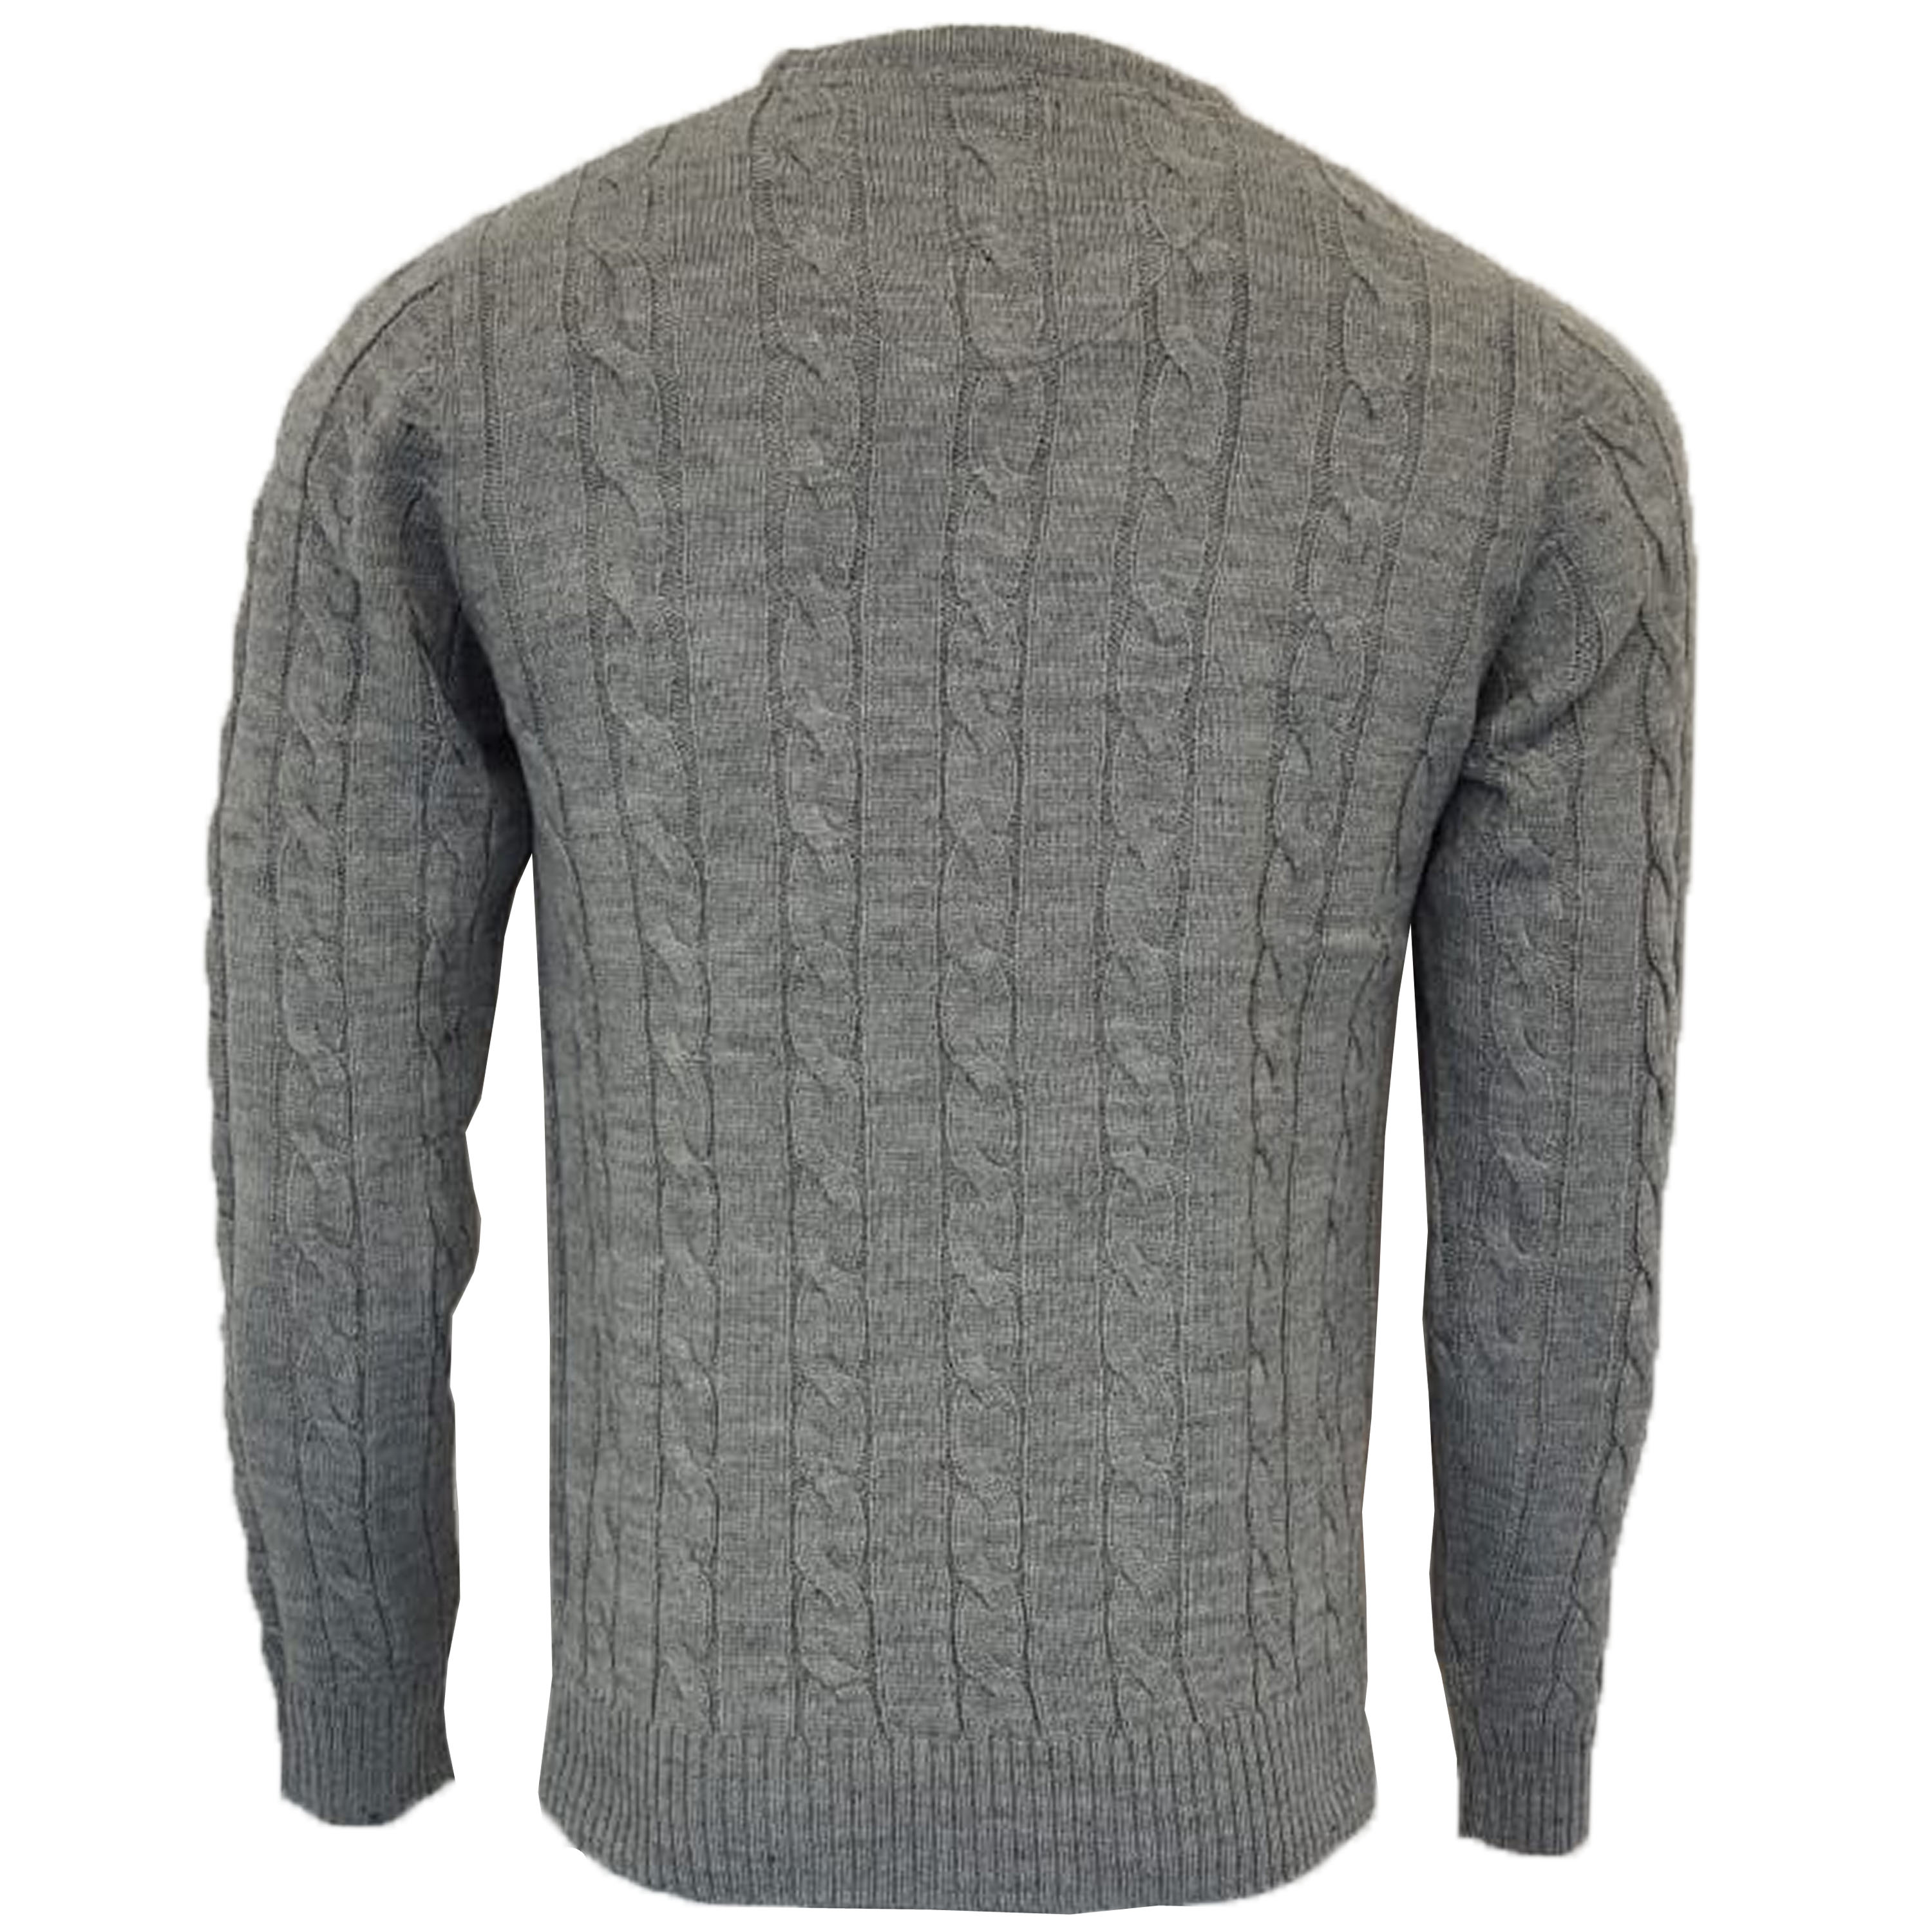 Mens-Jumper-Brave-Soul-Knitted-Sweater-Pullover-GOODWIN-Crew-Neck-Top-Winter-New thumbnail 6